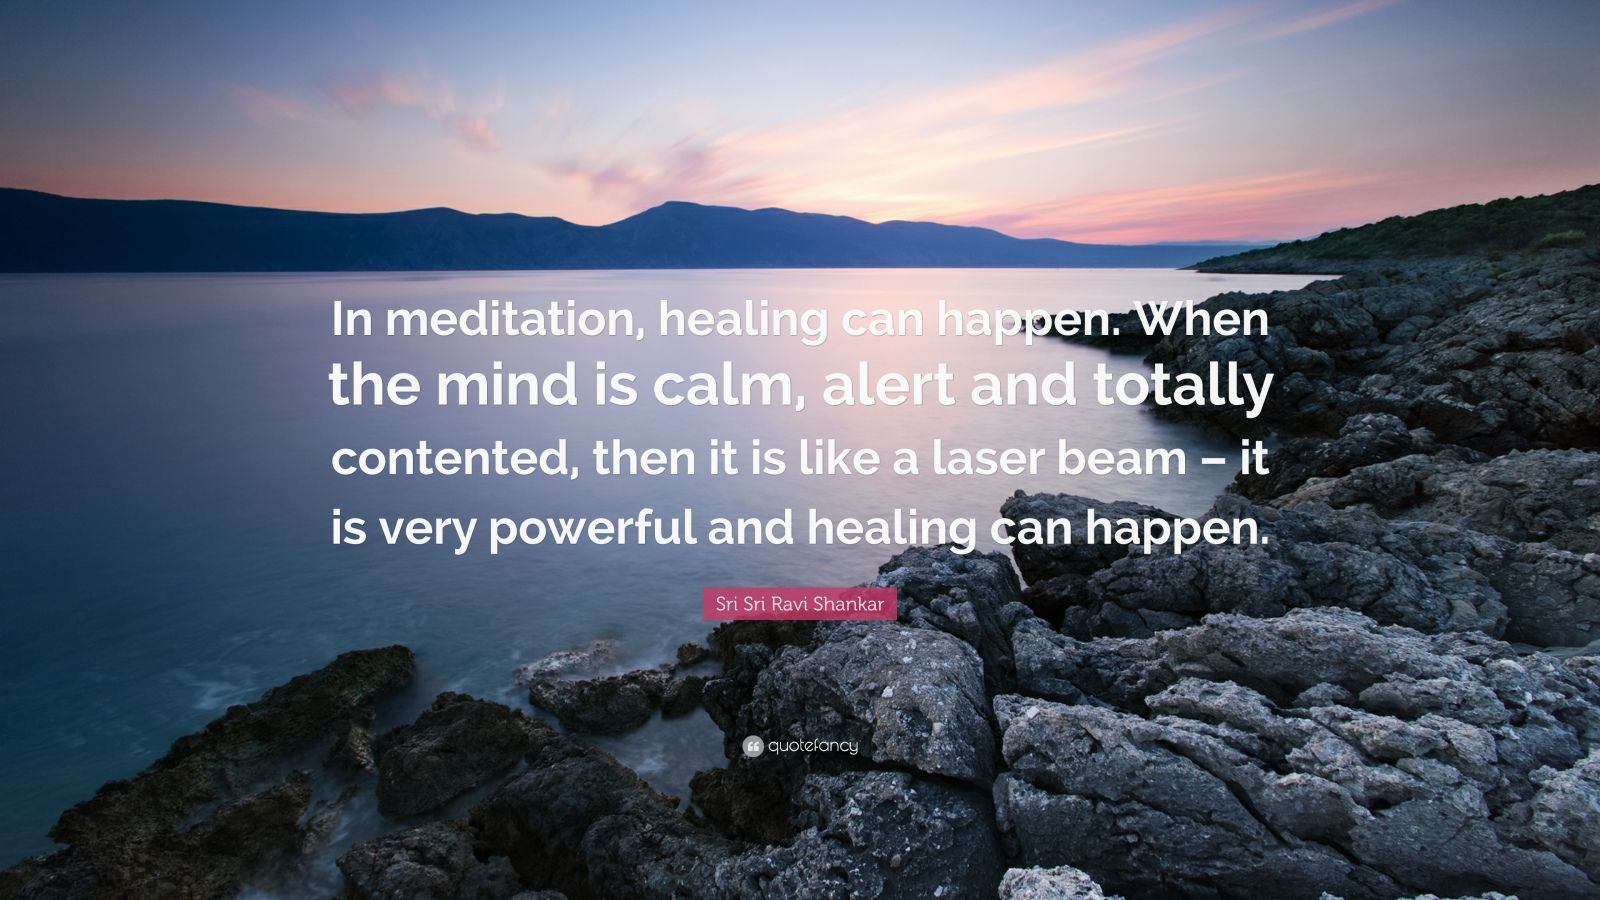 """Sri Sri Ravi Shankar Quote: """"In meditation, healing can happen. When the mind is calm, alert and totally contented, then it is like a laser beam – it is very powerful and healing can happen."""""""